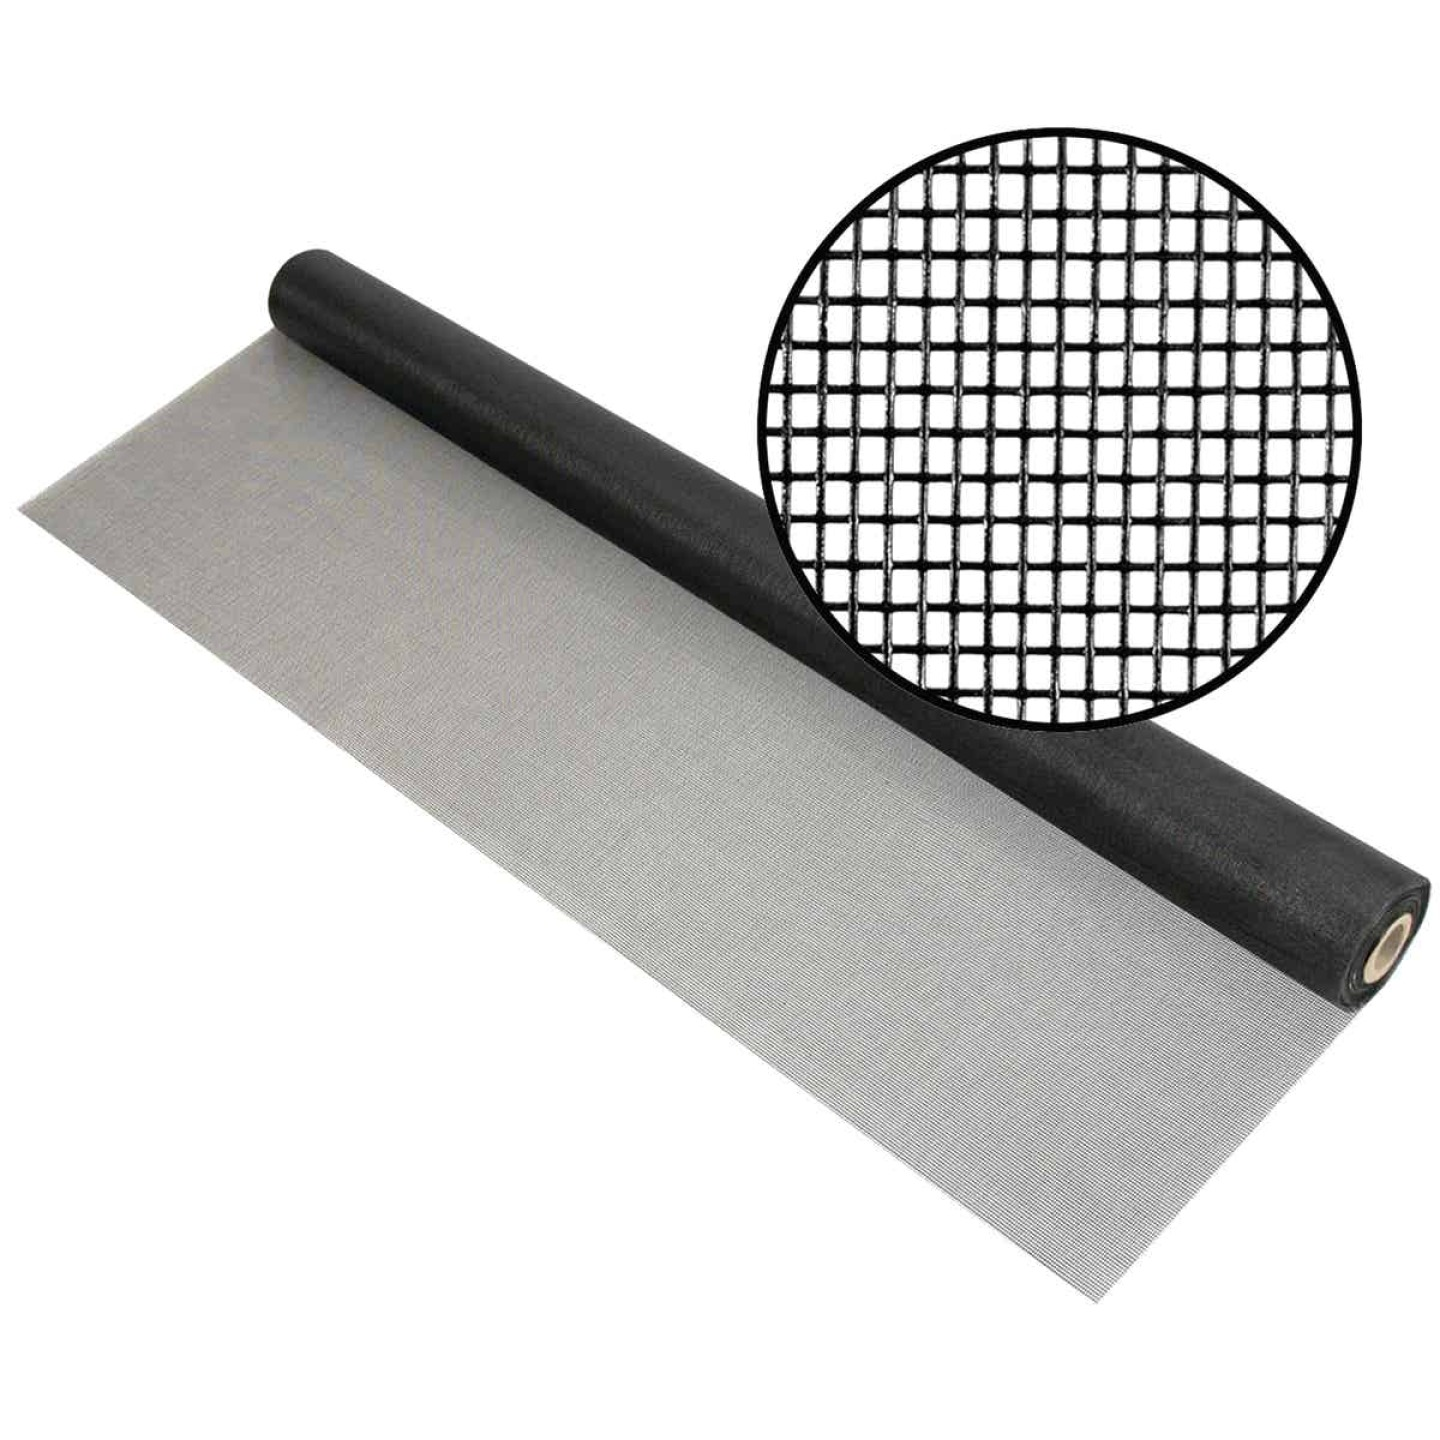 Phifer 84 In. x 100 Ft. Charcoal Fiberglass Pool Screen Image 1